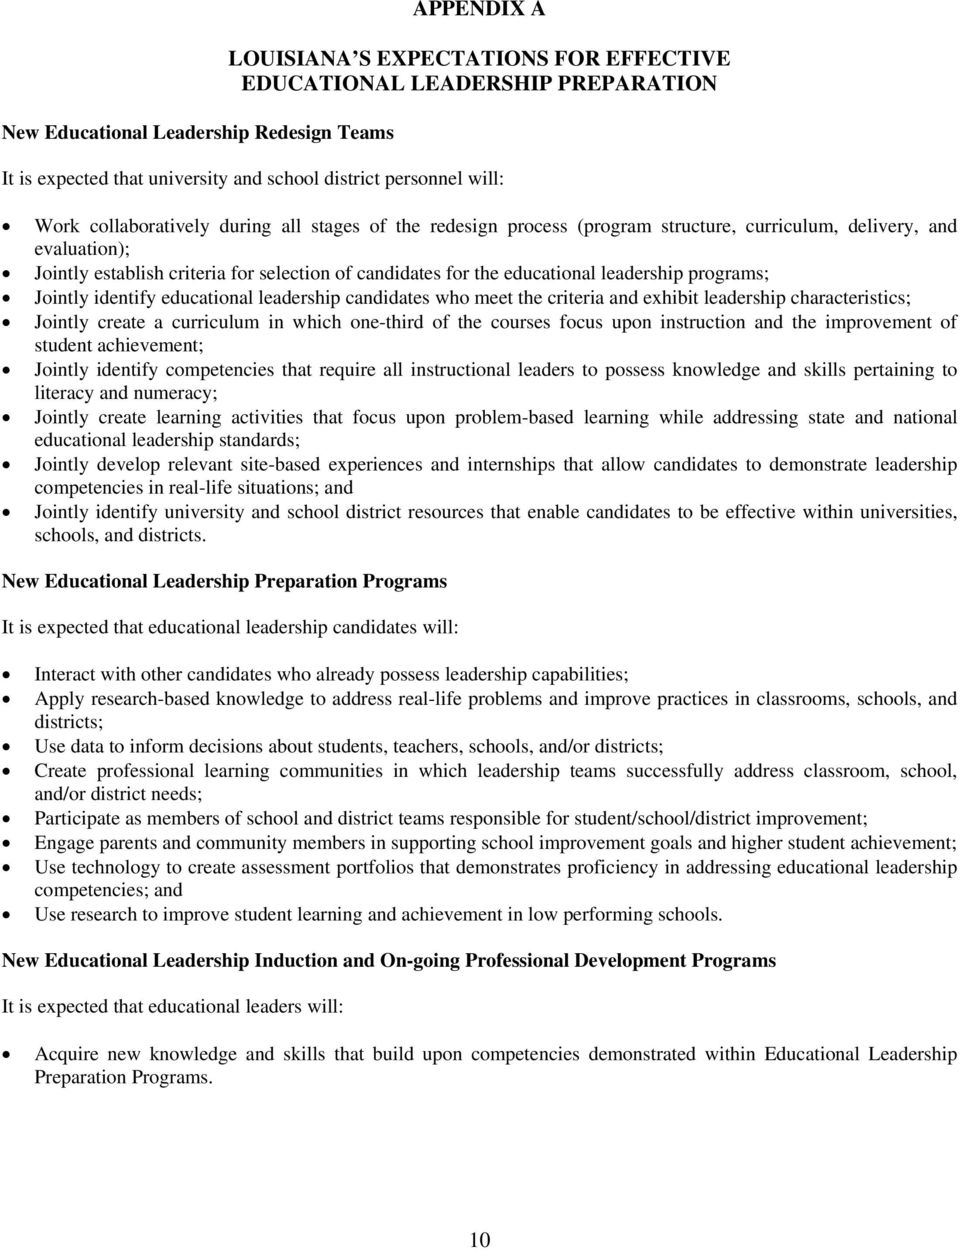 leadership programs; Jointly identify educational leadership candidates who meet the criteria and exhibit leadership characteristics; Jointly create a curriculum in which one-third of the courses